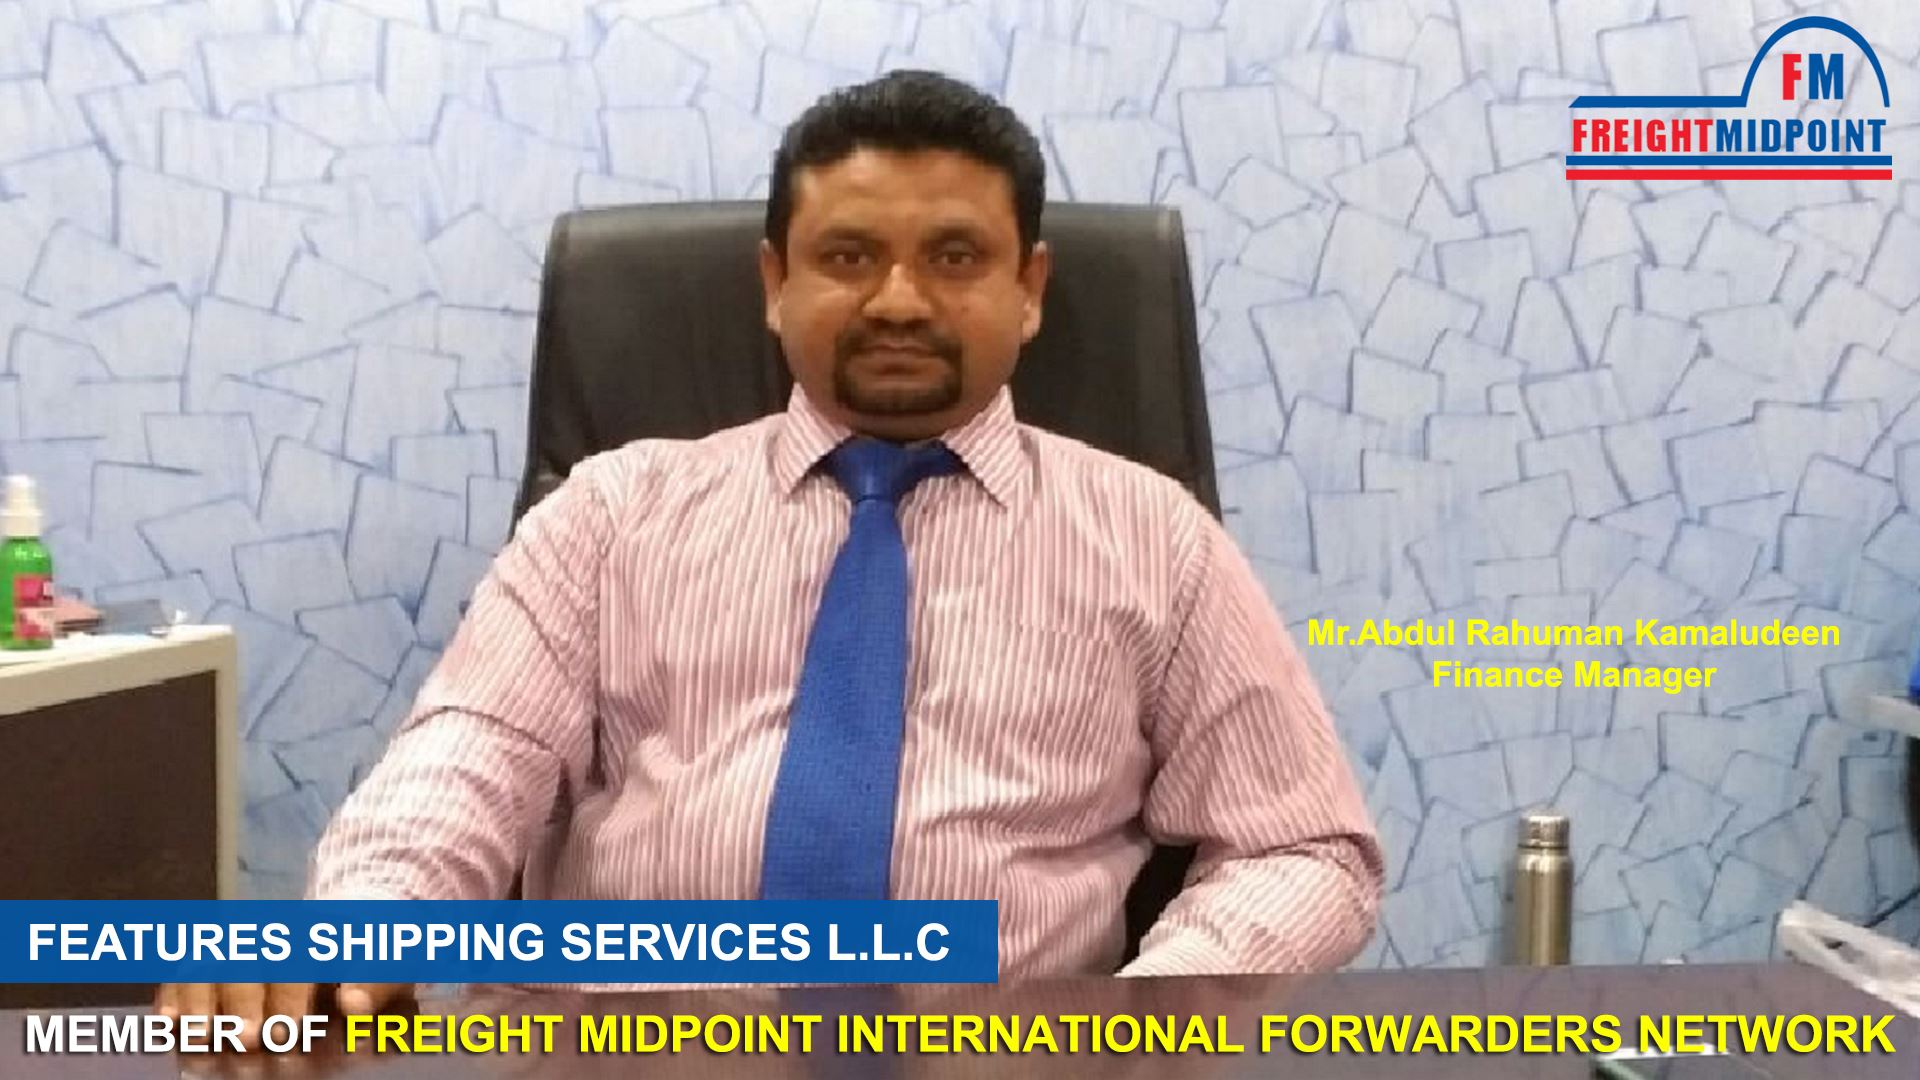 Freight Midpoint International Forwarders Network - FM Chairman Site